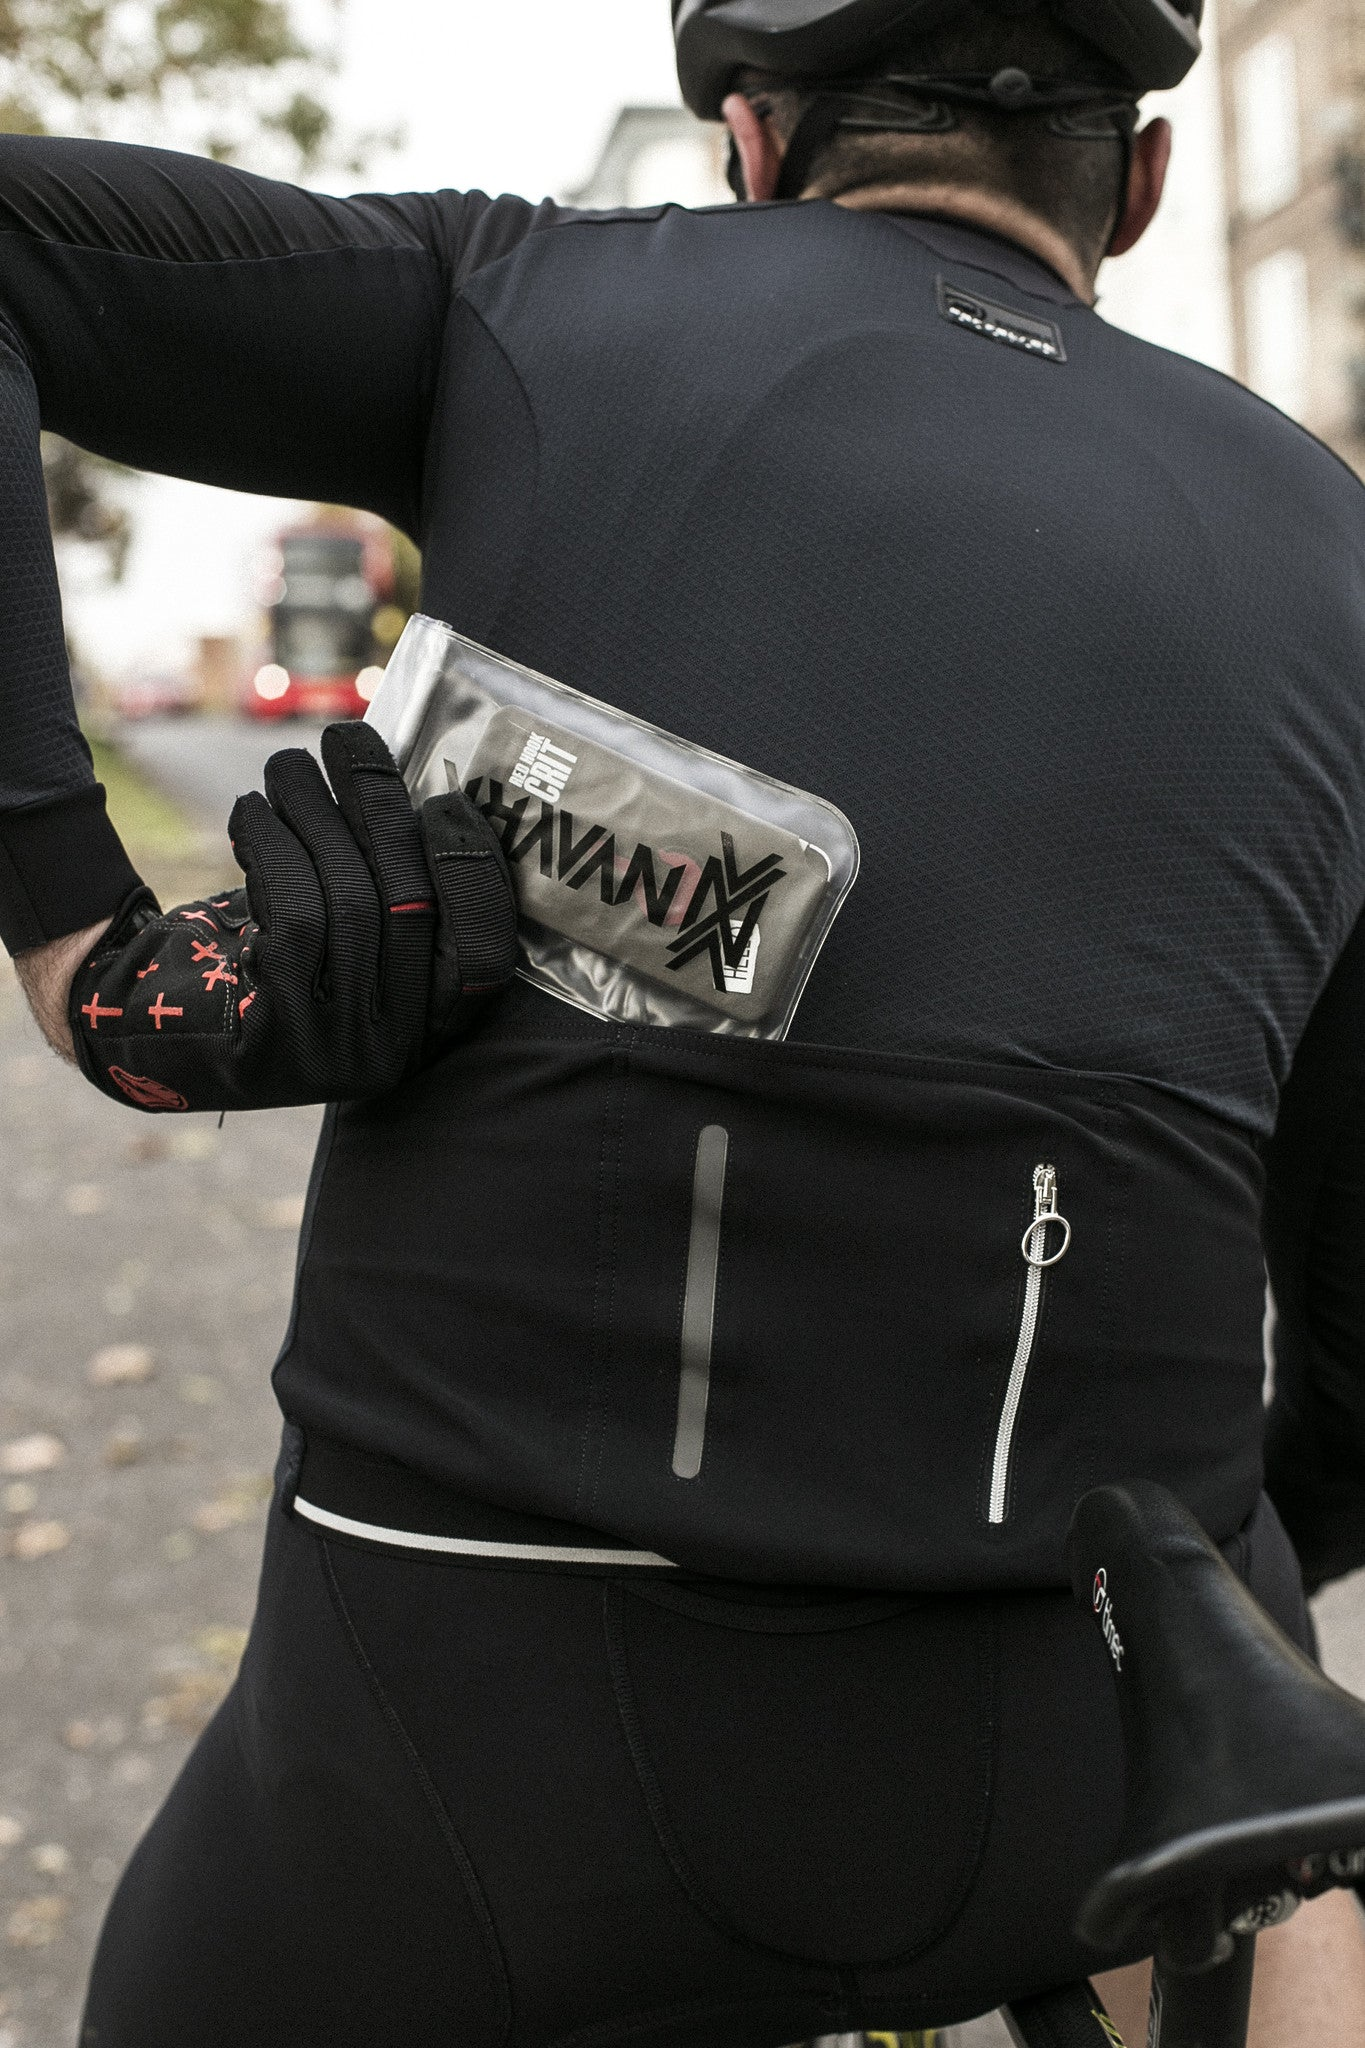 NVAYRK Cycling Wallet